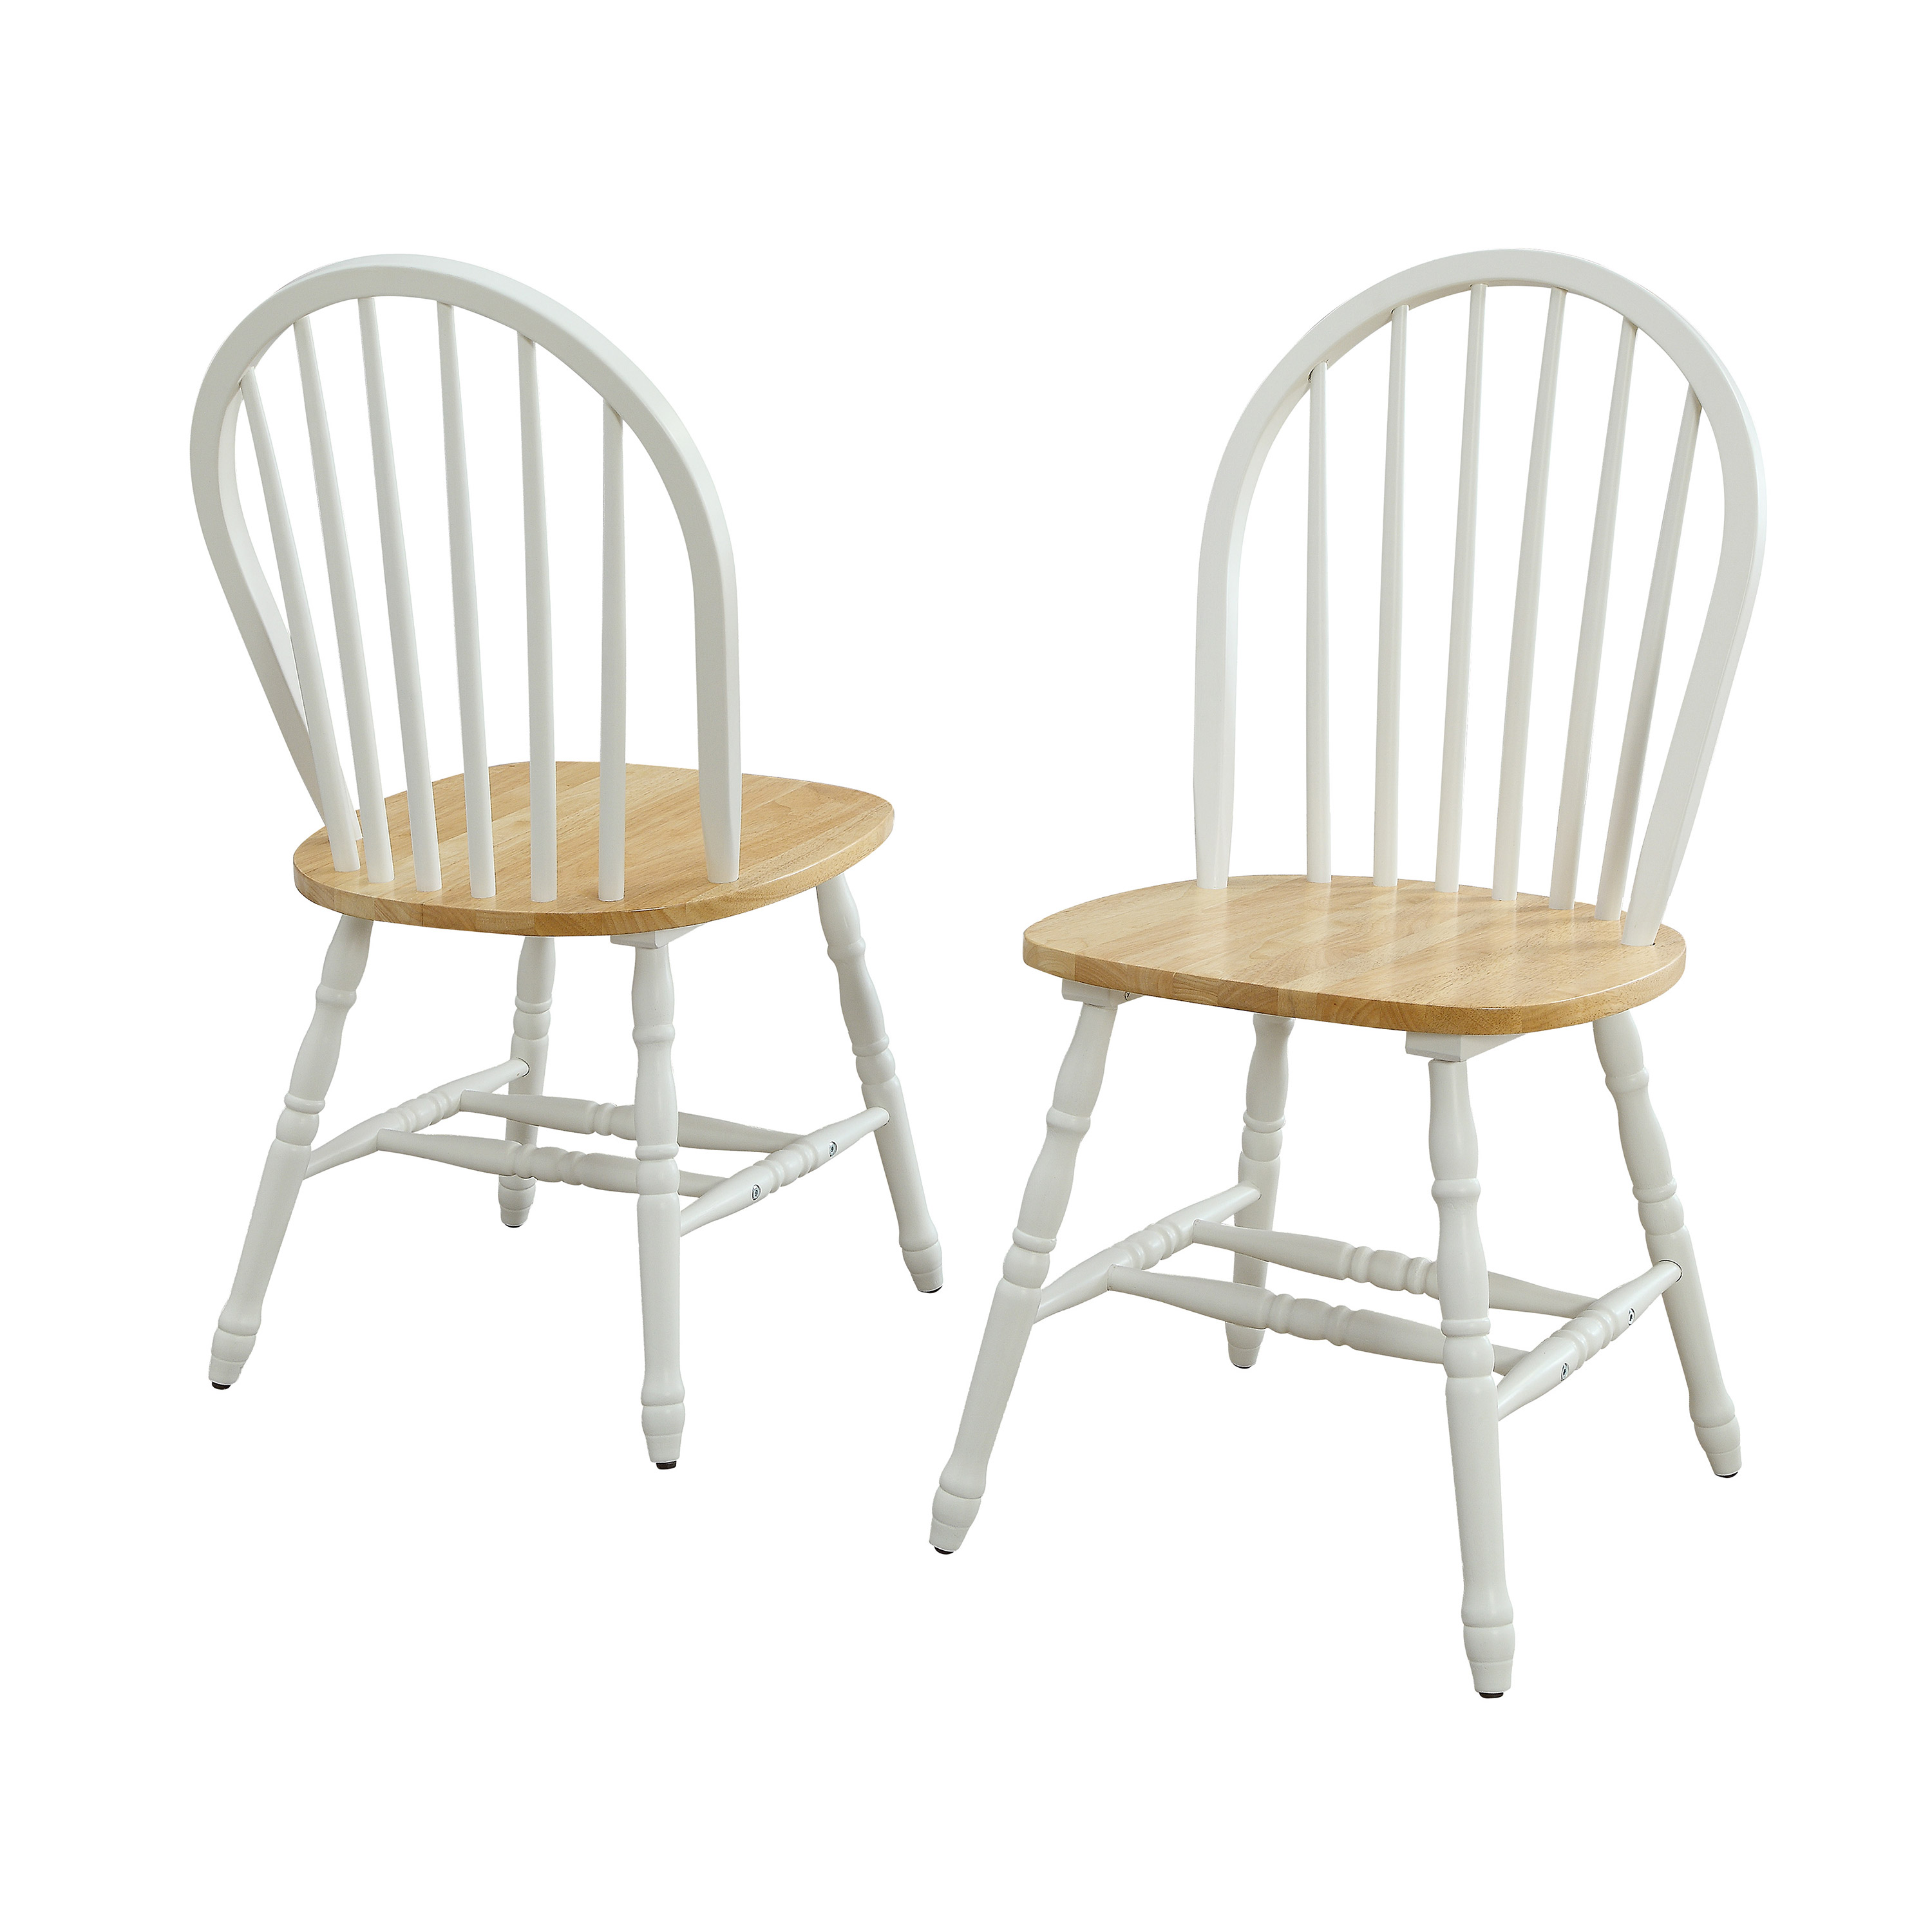 Better Homes & Gardens Autumn Lane Windsor Solid Wood Dining Chairs, Set of 2